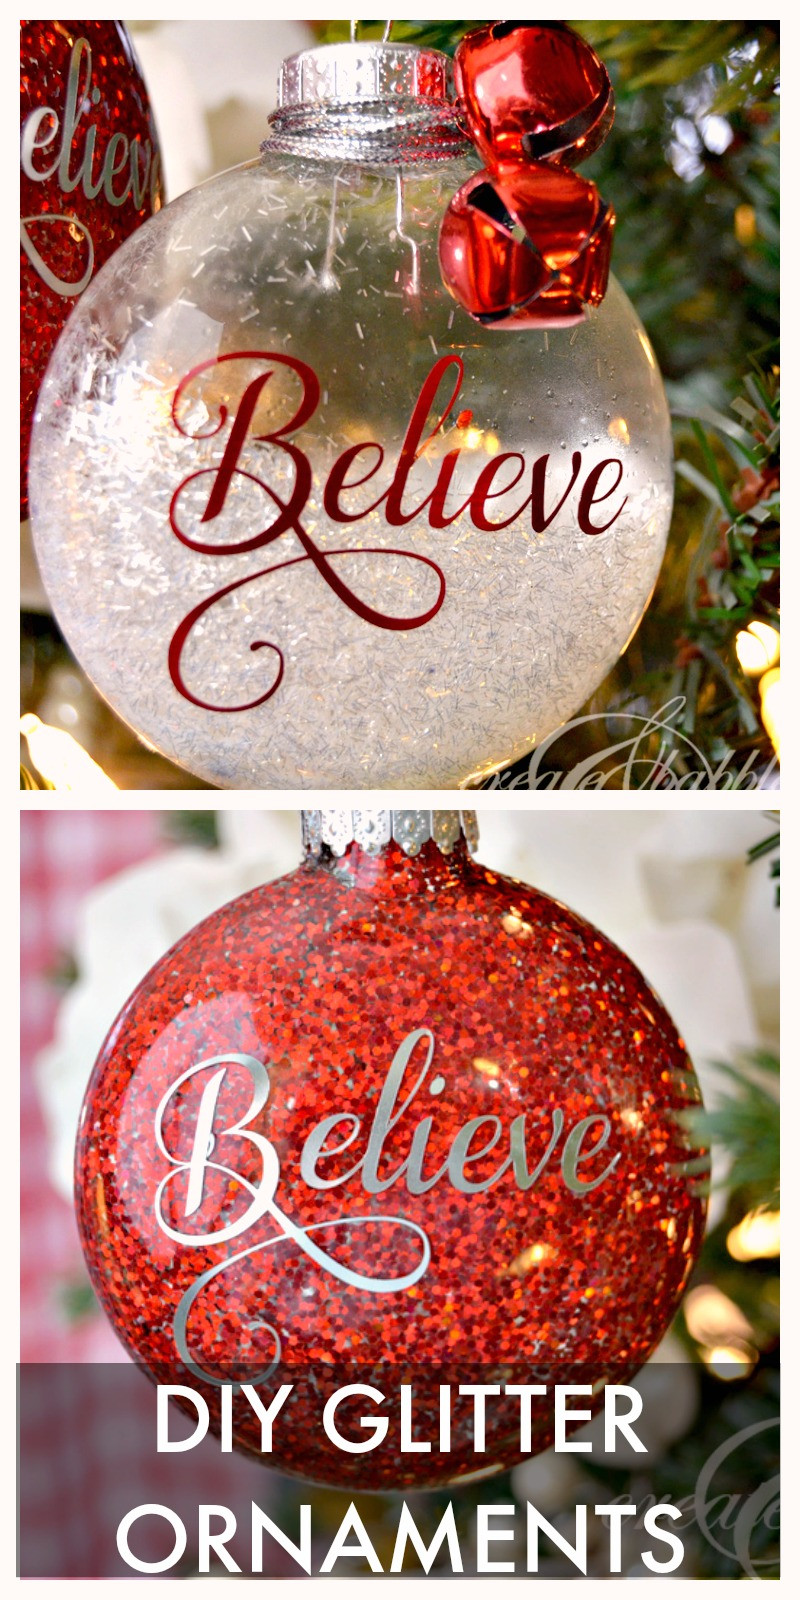 Best ideas about Pinterest Christmas DIY . Save or Pin DIY Glitter Christmas Ornaments Create and Babble Now.